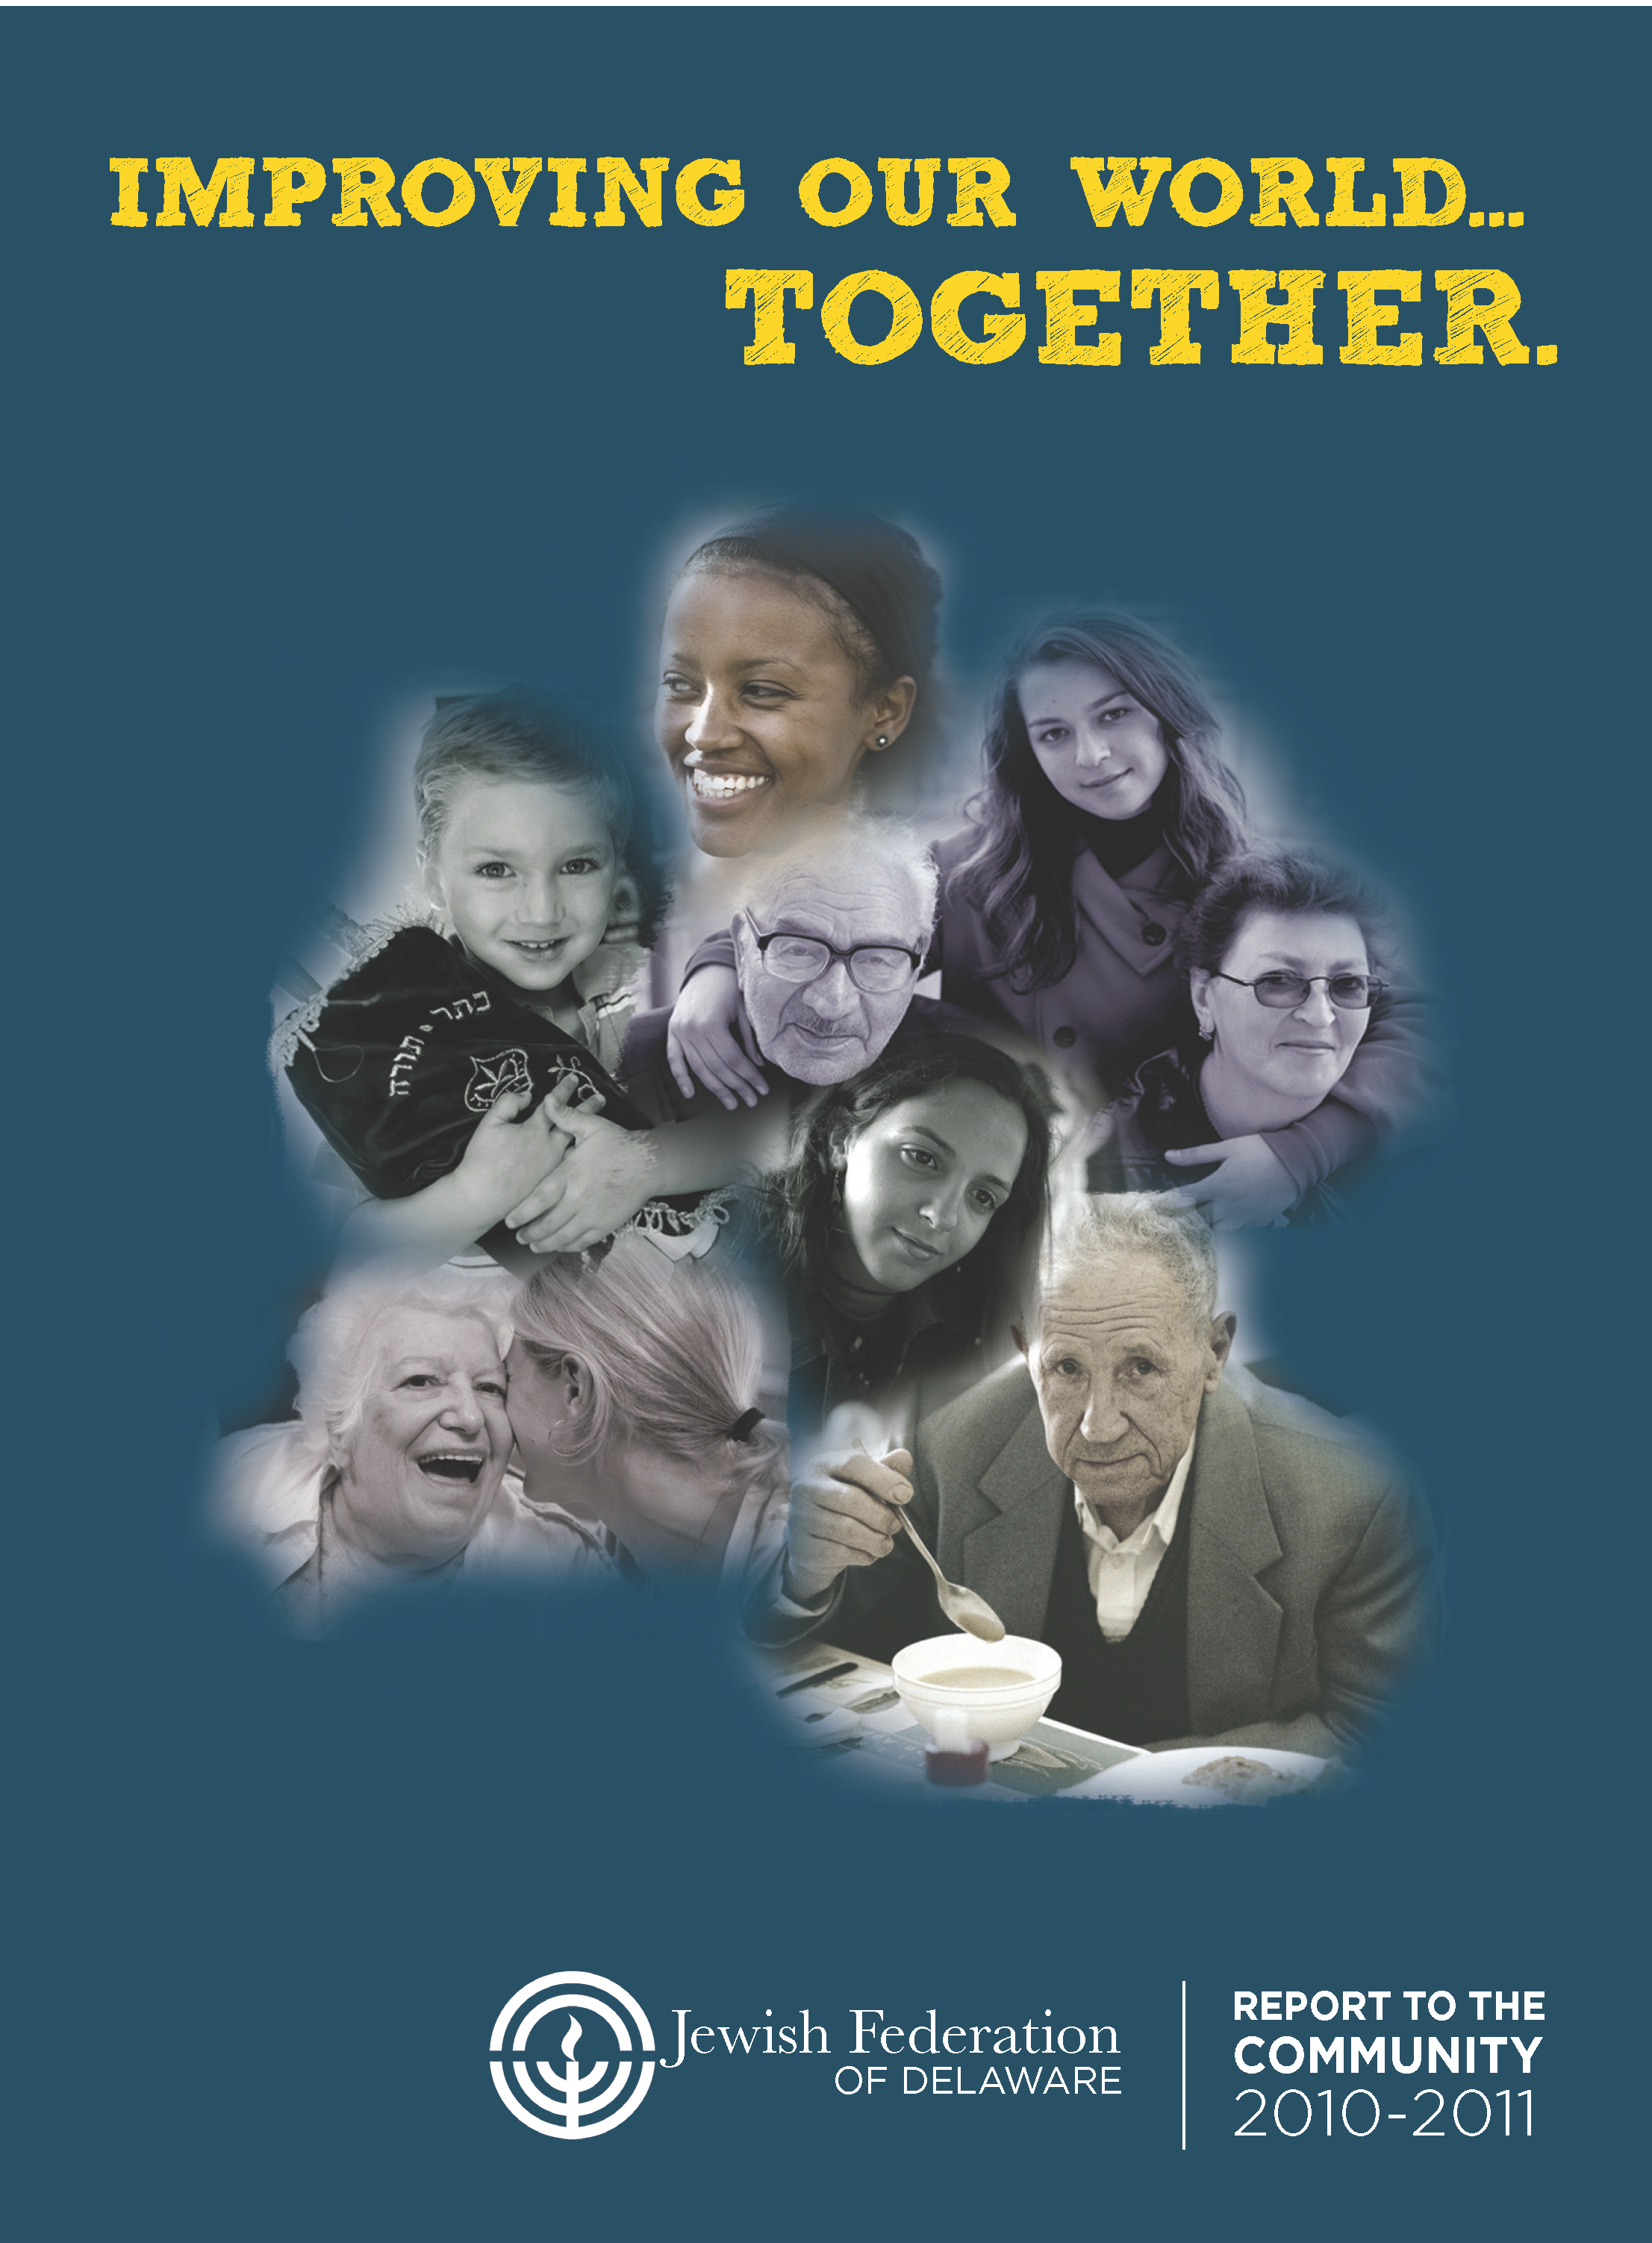 Click HERE to view the 2010-2011 Report to the Community